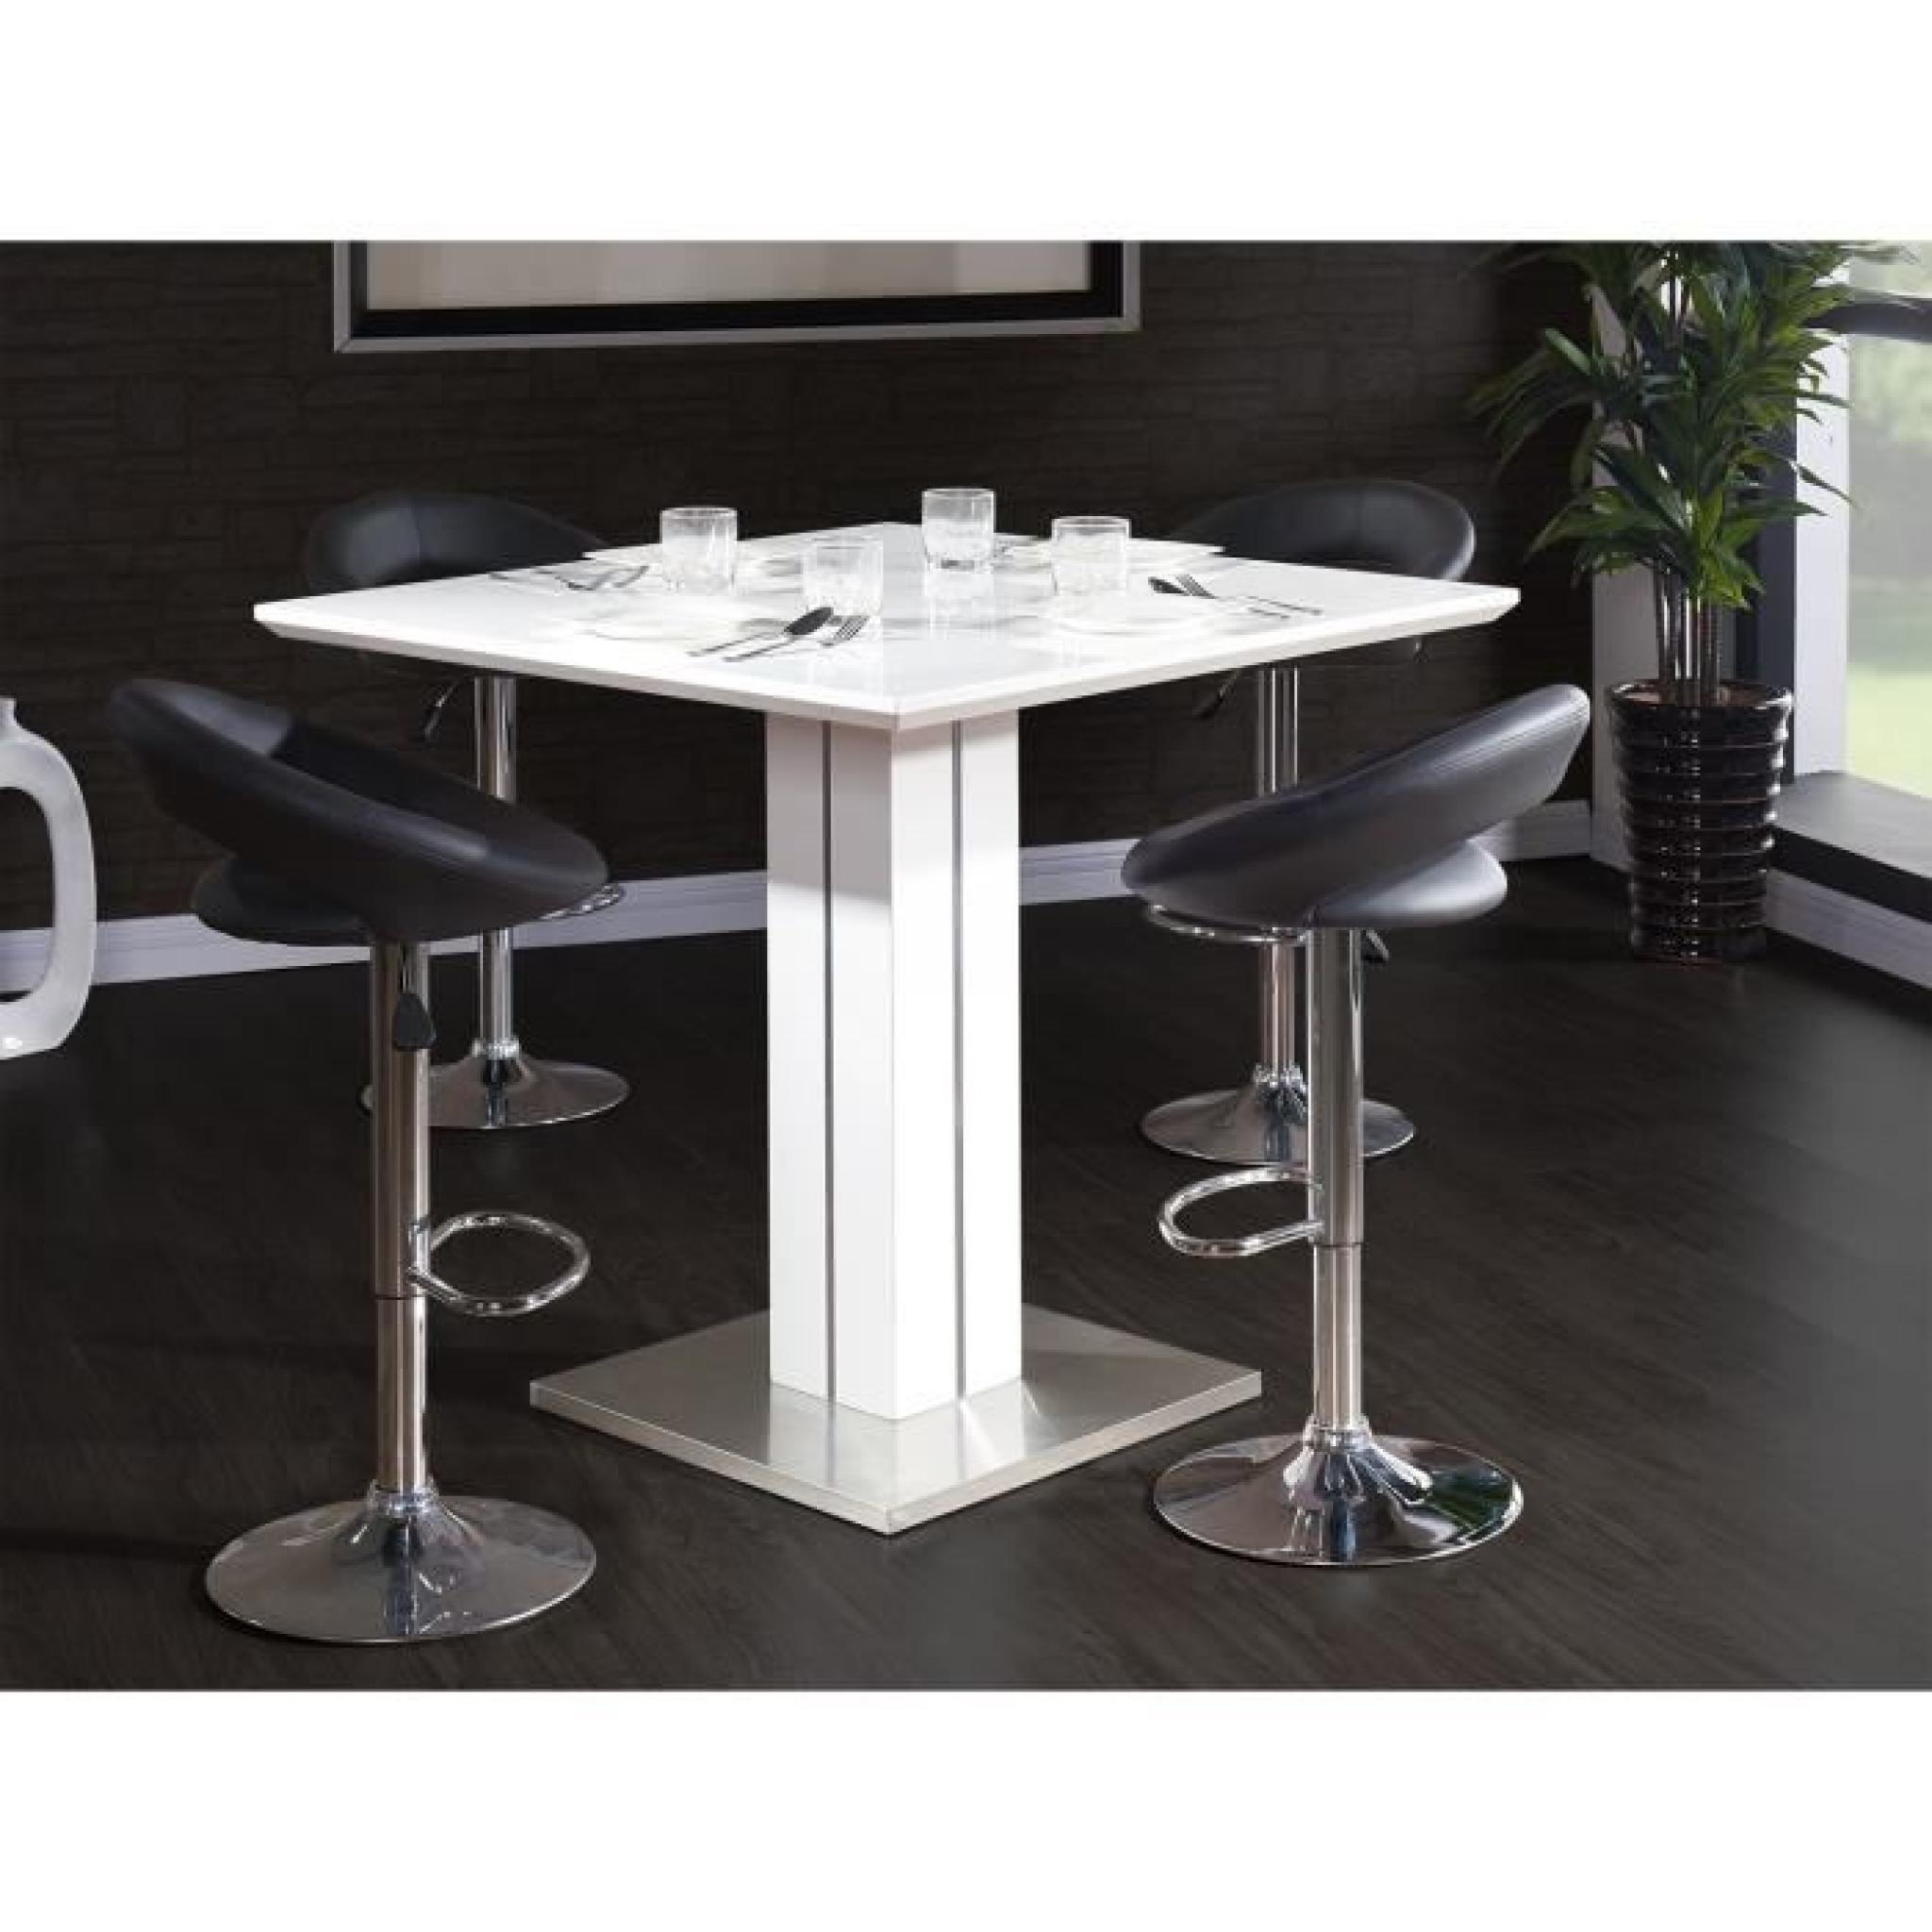 Sandro table de bar 100x100cm laqu blanc brillant achat for Table de chevet laque blanc brillant